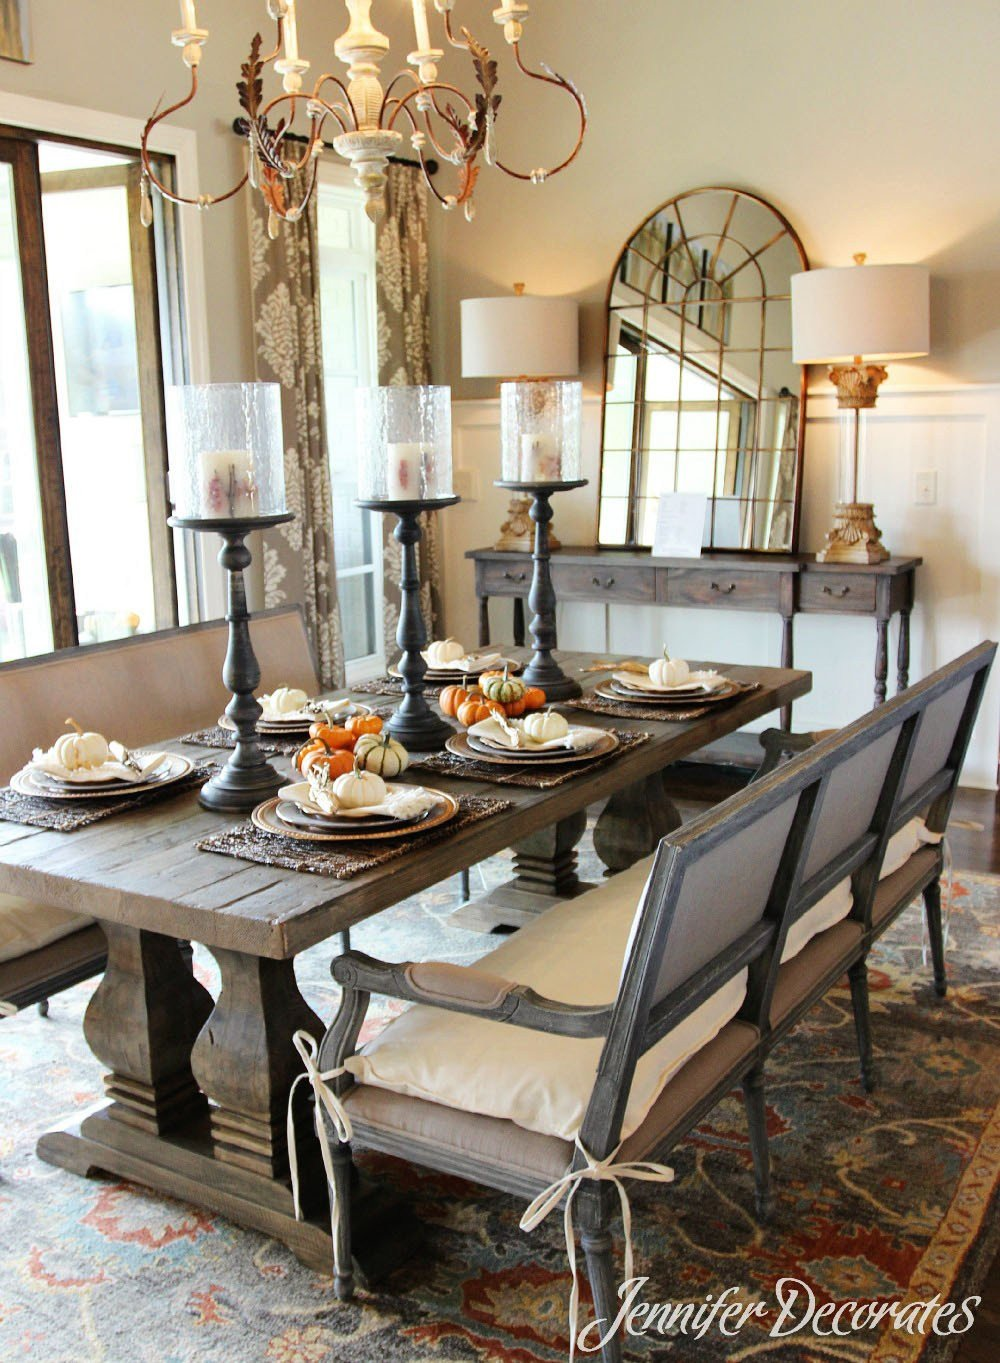 Decor for Dining Room Tables New Fall Table Decorations that are Easy and Affordable